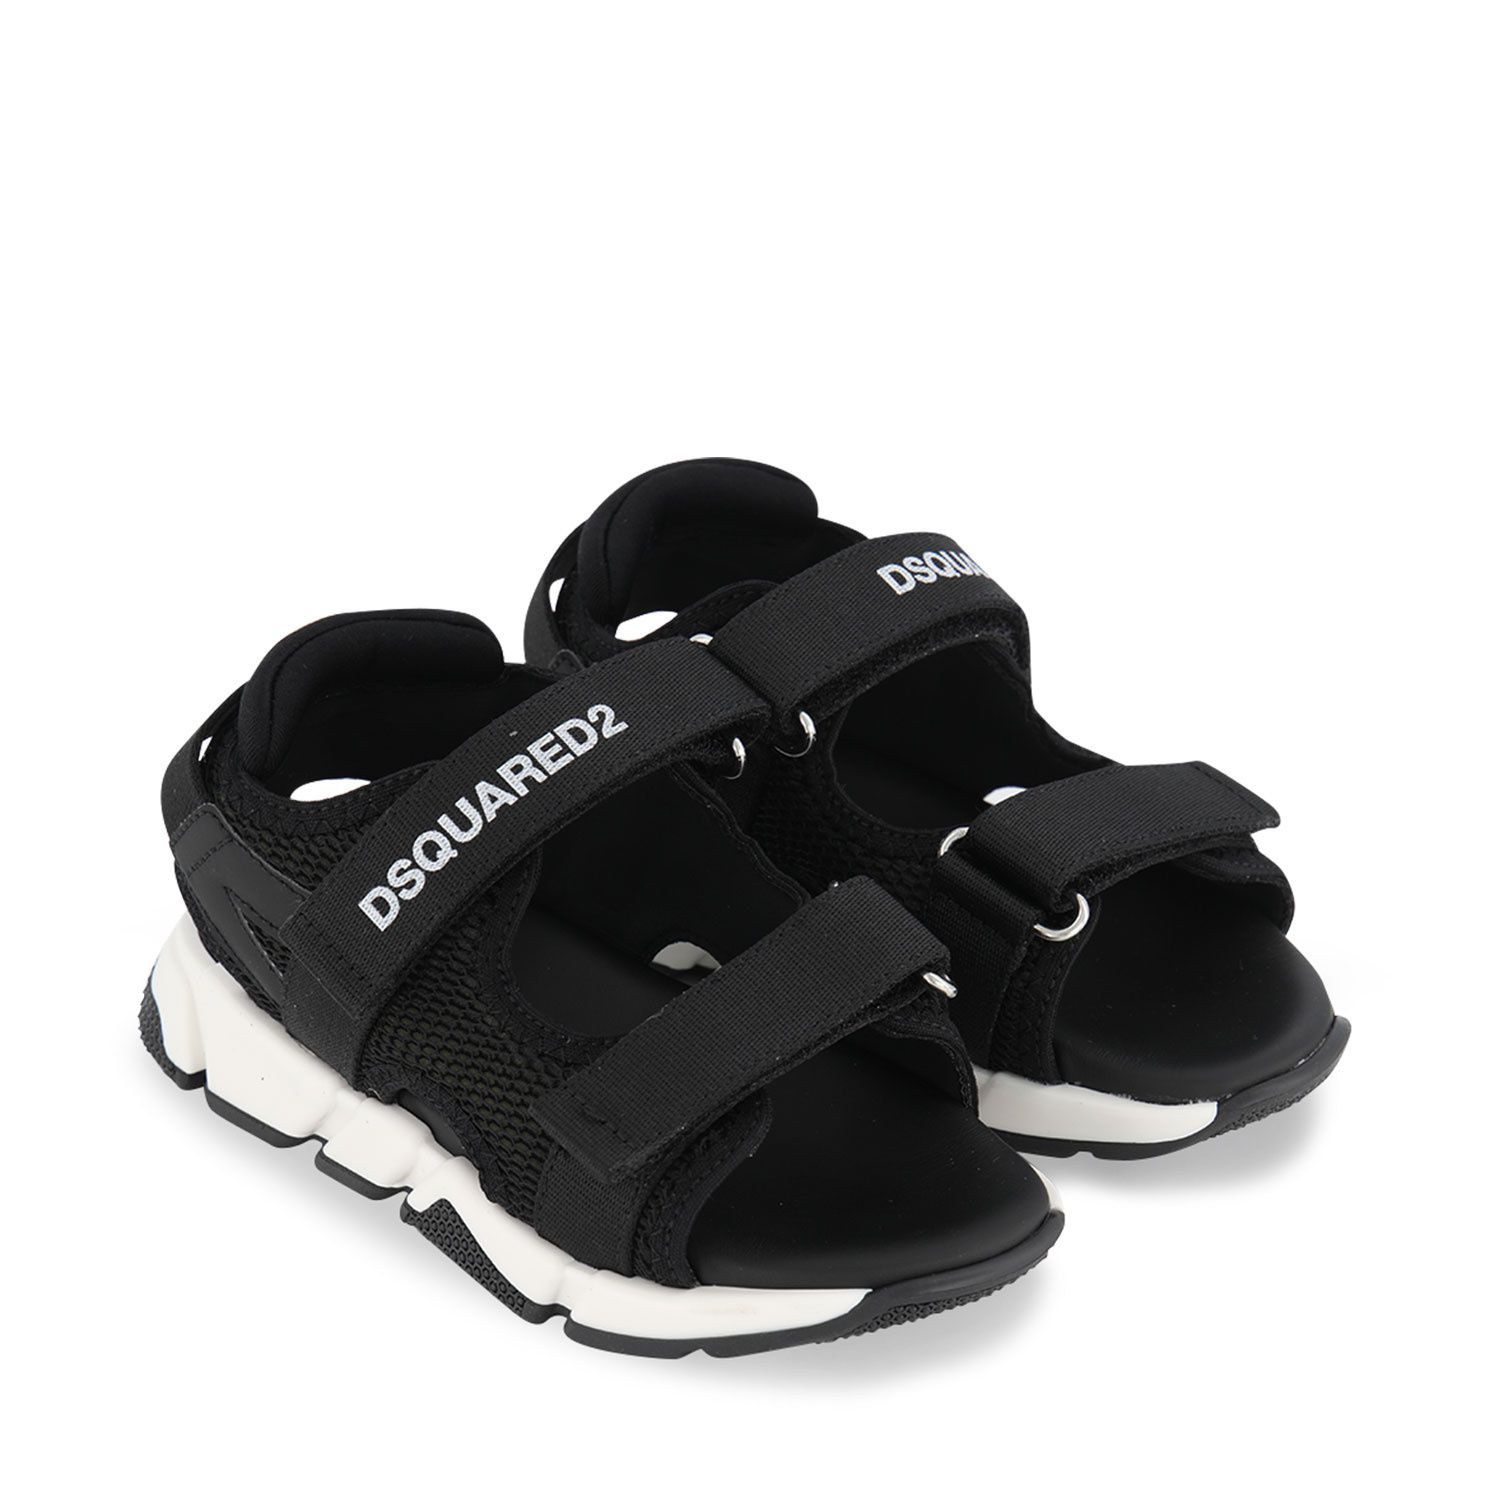 Picture of Dsquared2 67029 kids sandals army